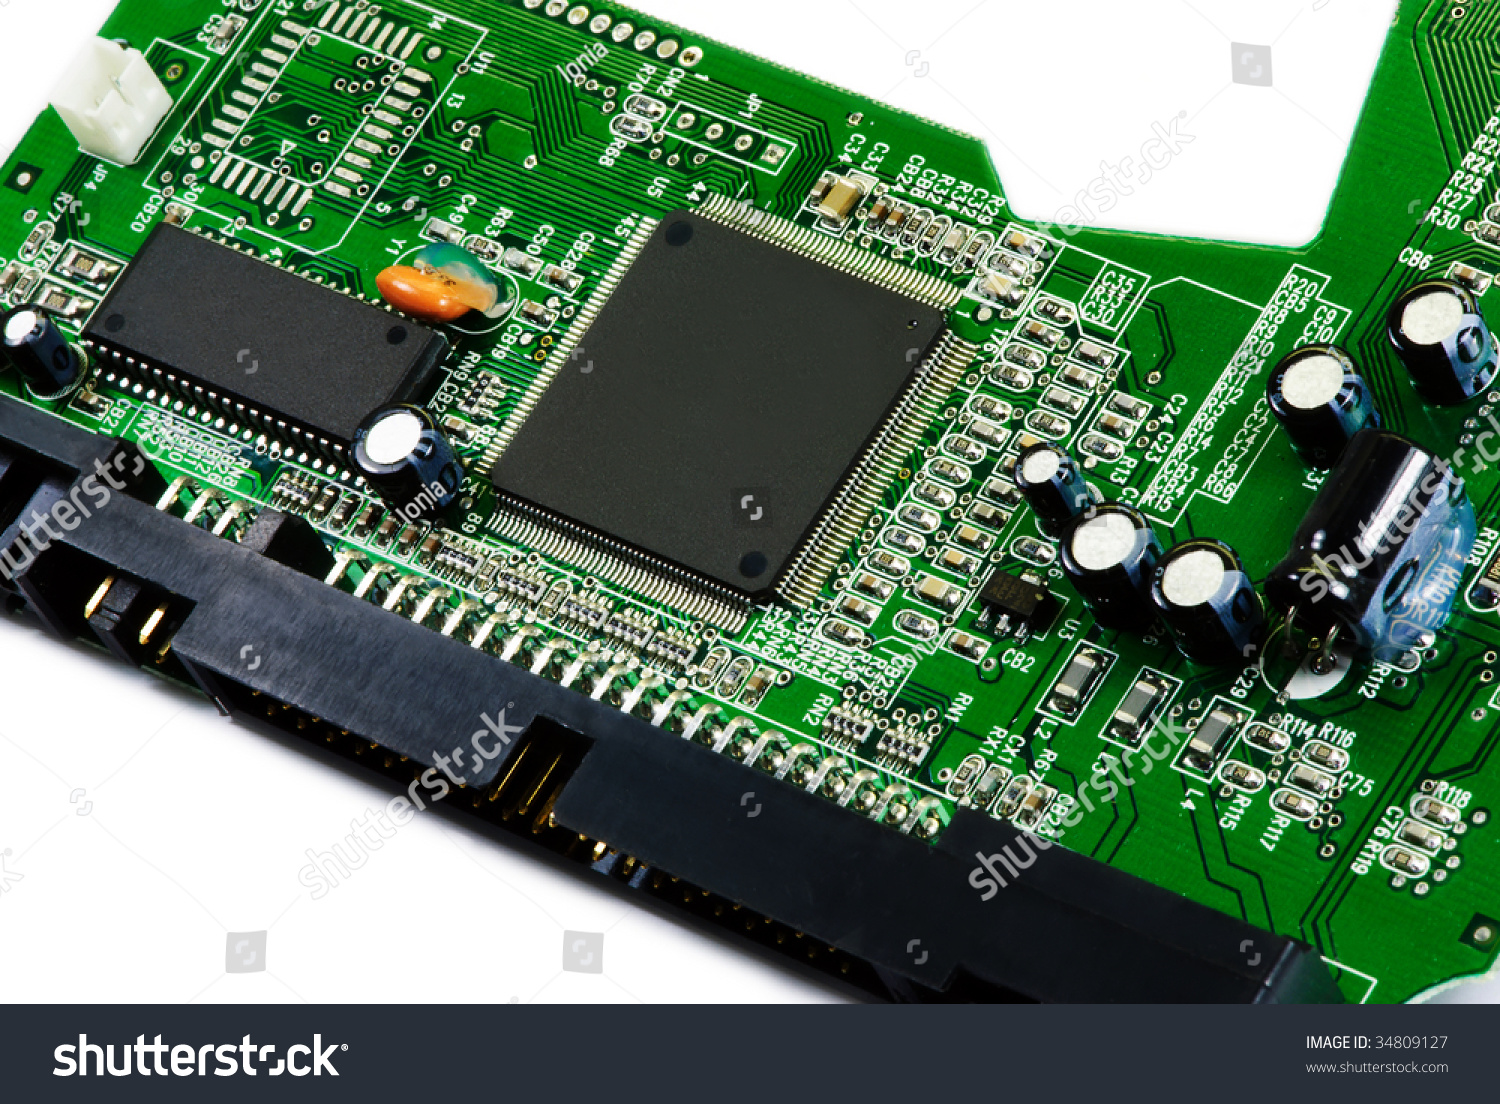 Printed Circuit Board Stock Photo 5153818 Shutterstock Sata And Ata Hard Disk Connector Close Up Image Ez Canvas